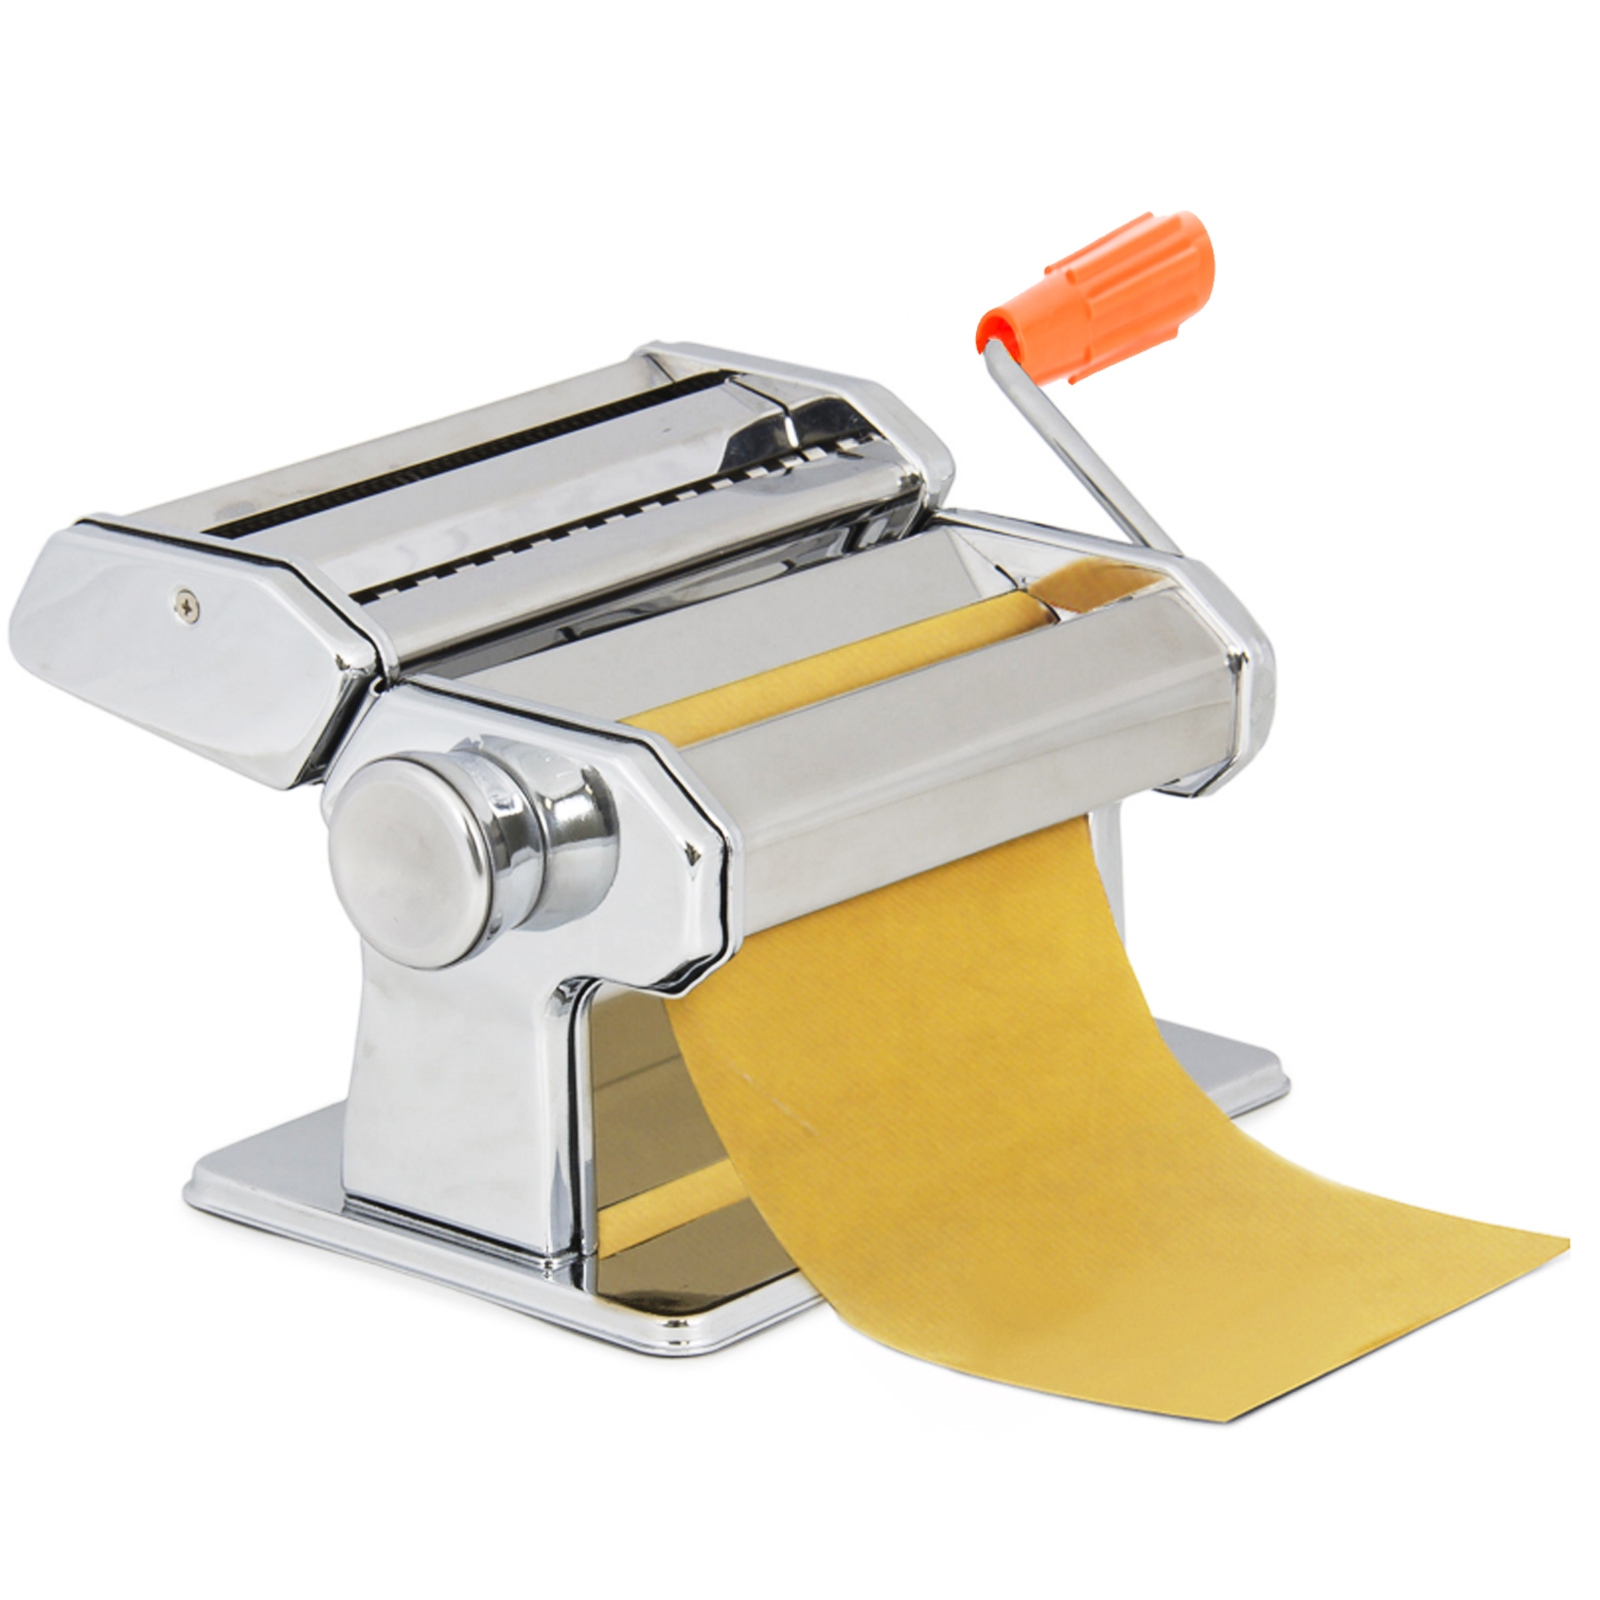 Pasta Maker Machine - Heavy Duty Steel Construction w Easy Lock Dial and Wood Grip Handle- Model 150